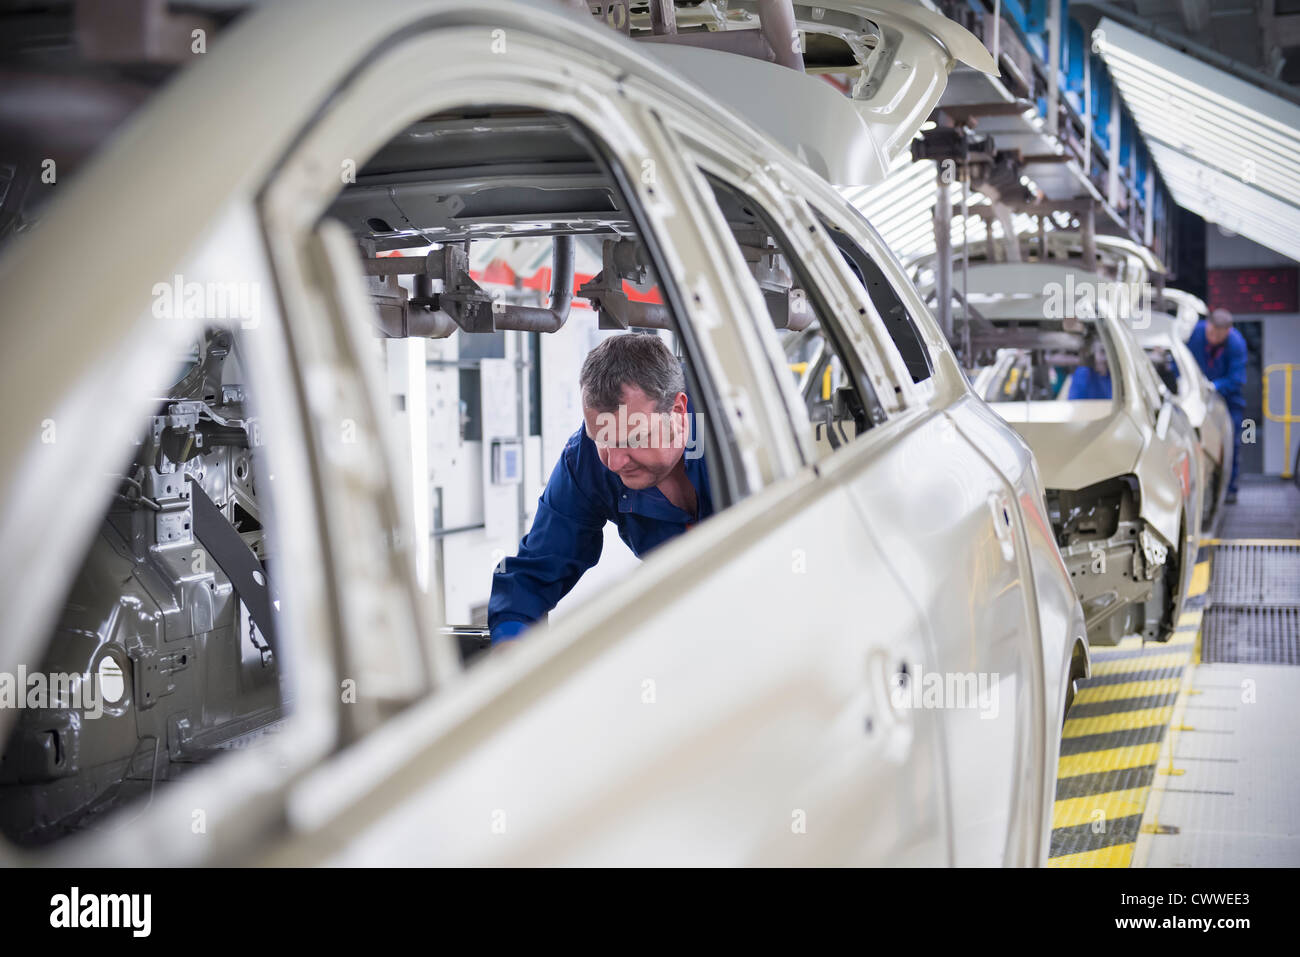 Worker fitting sound proofing to car in car factory - Stock Image